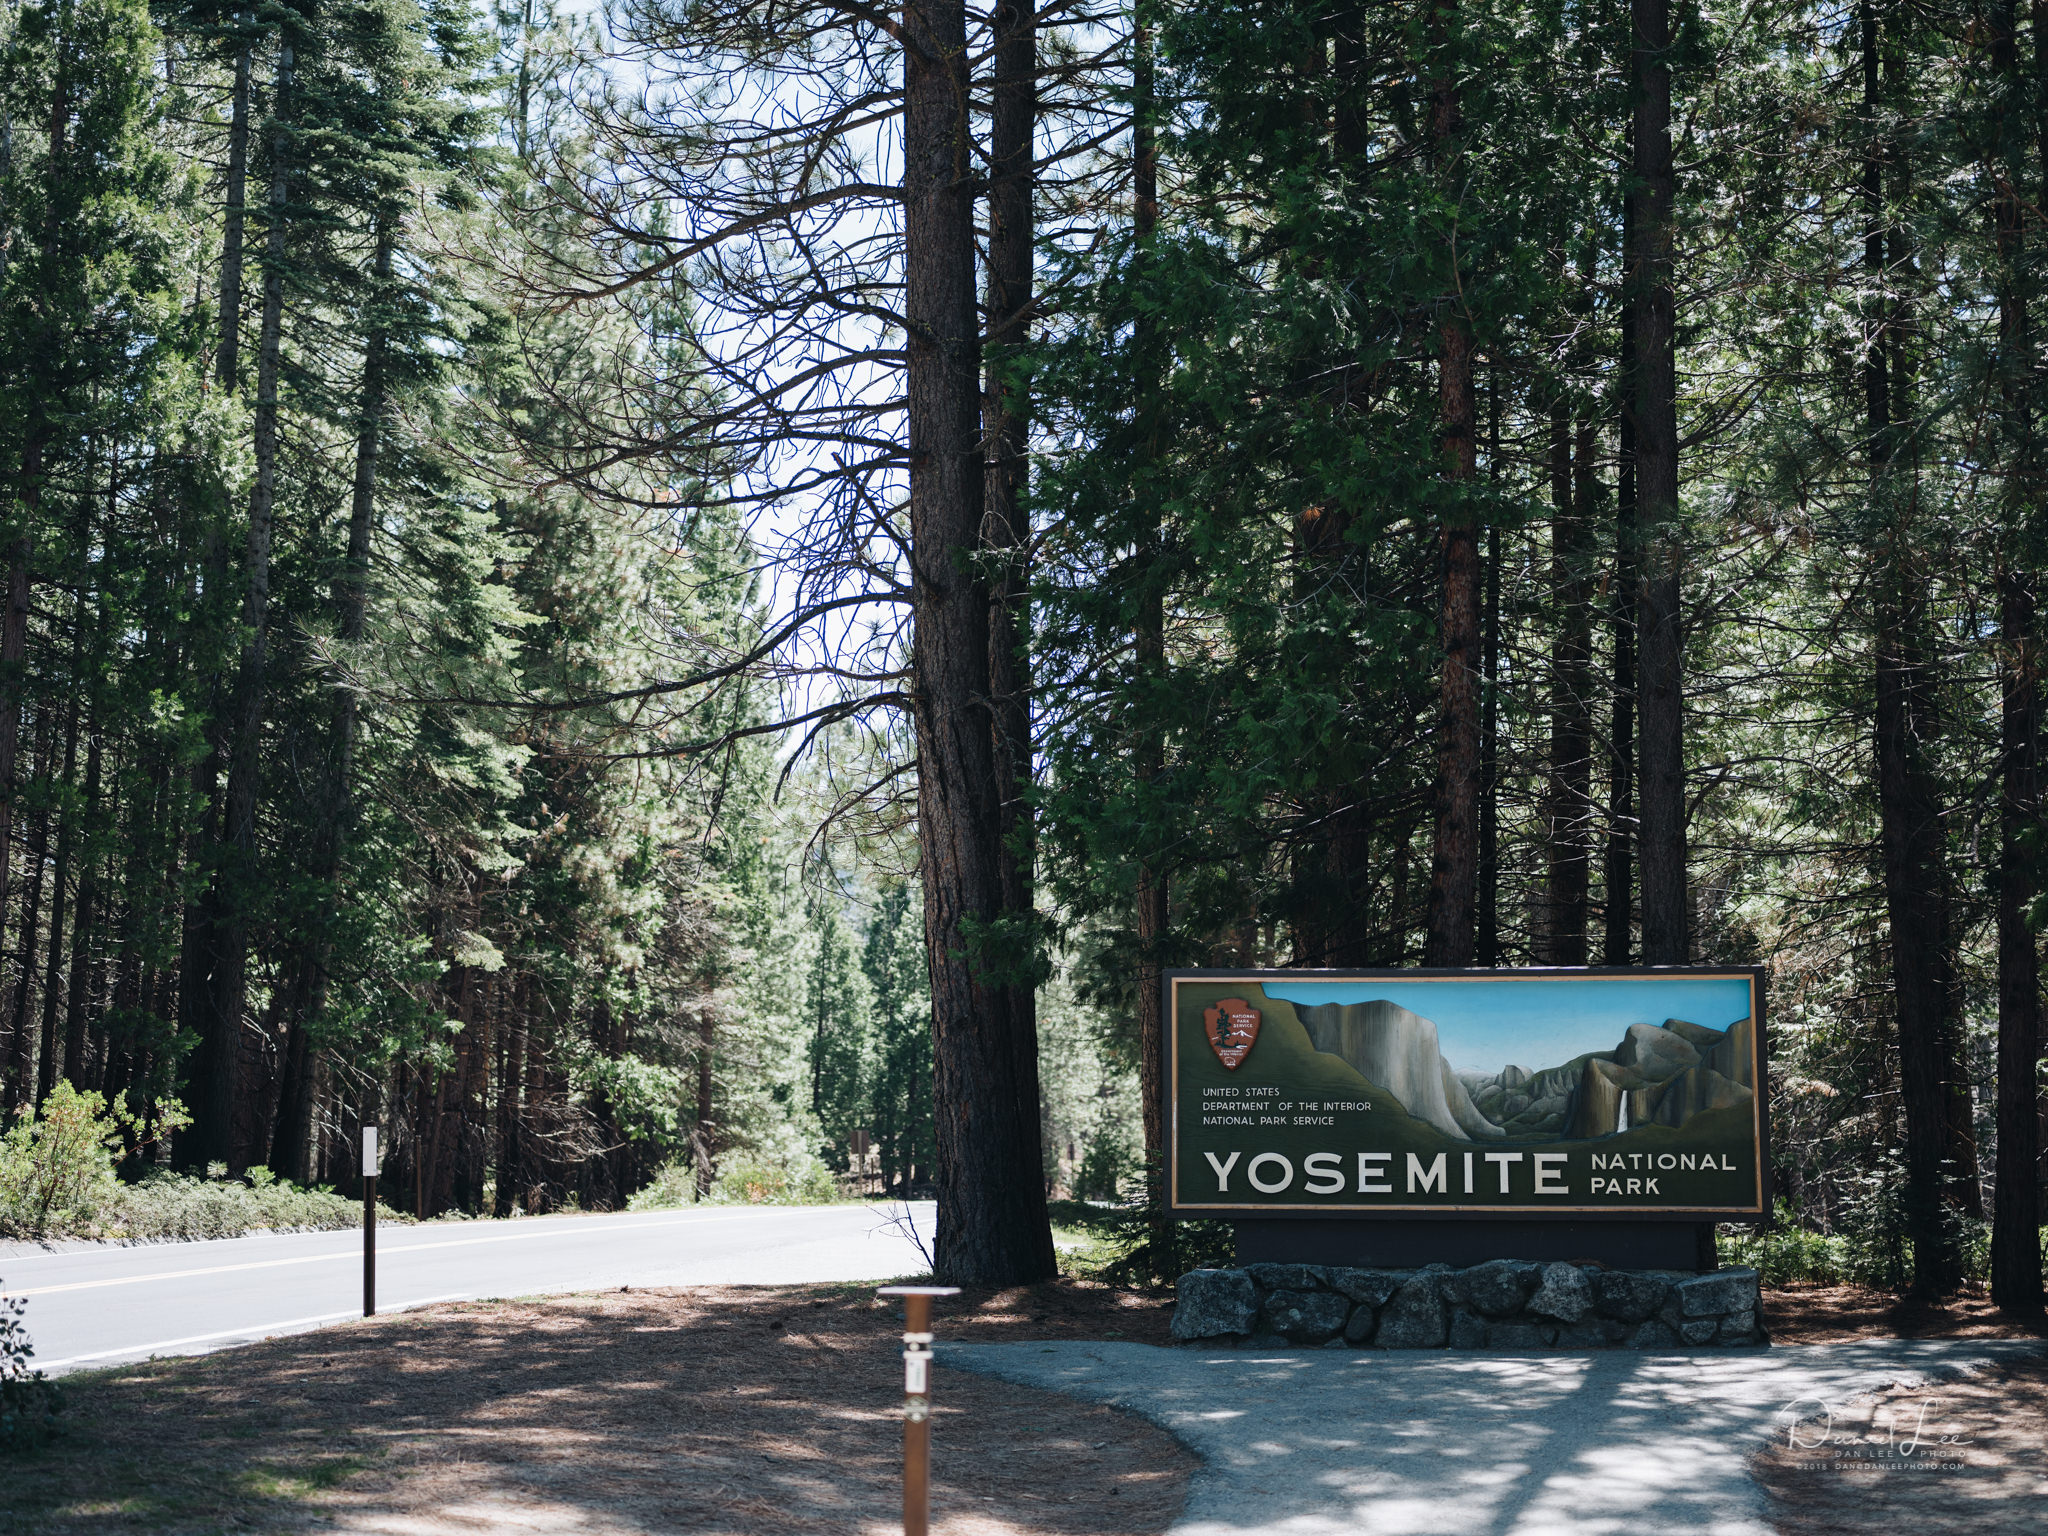 Entrance sign to Yosemite National Park. Photo by Daniel Lee.